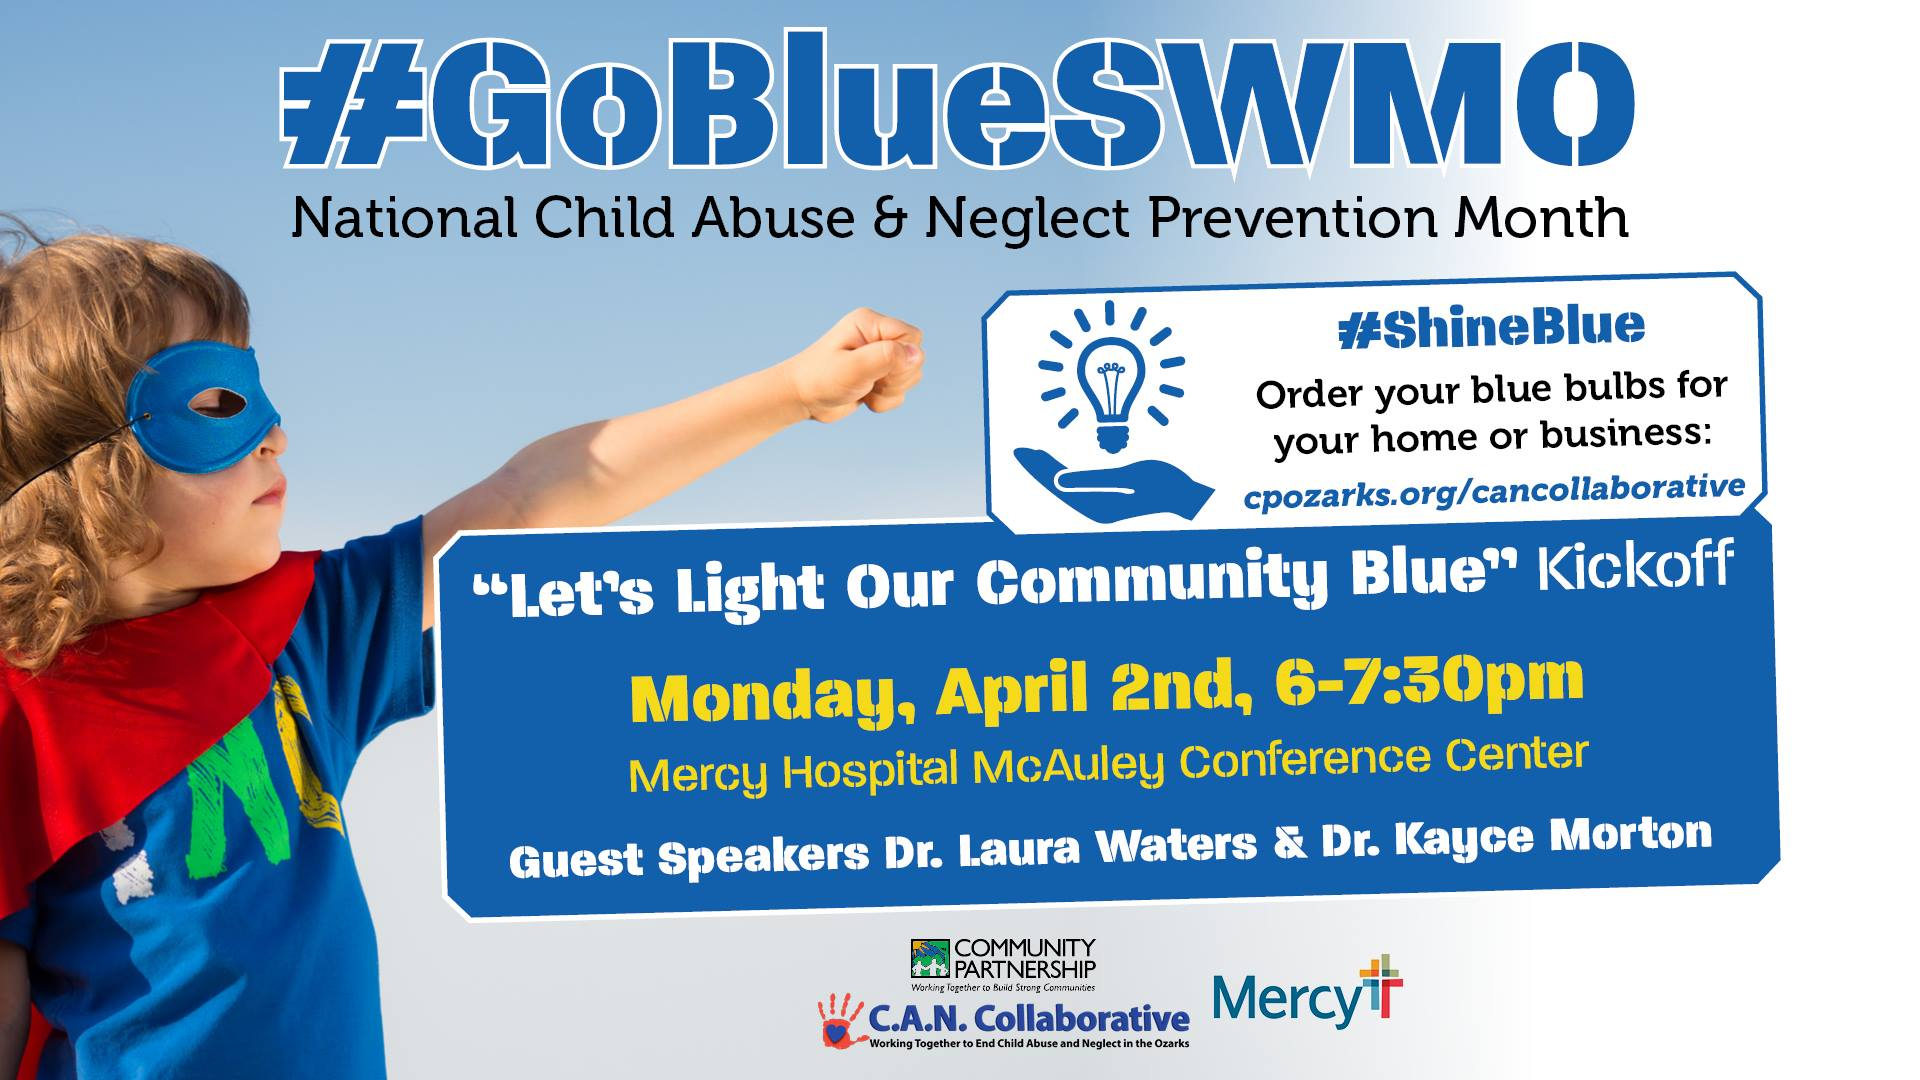 Let's Light Our Community Blue Kickoff